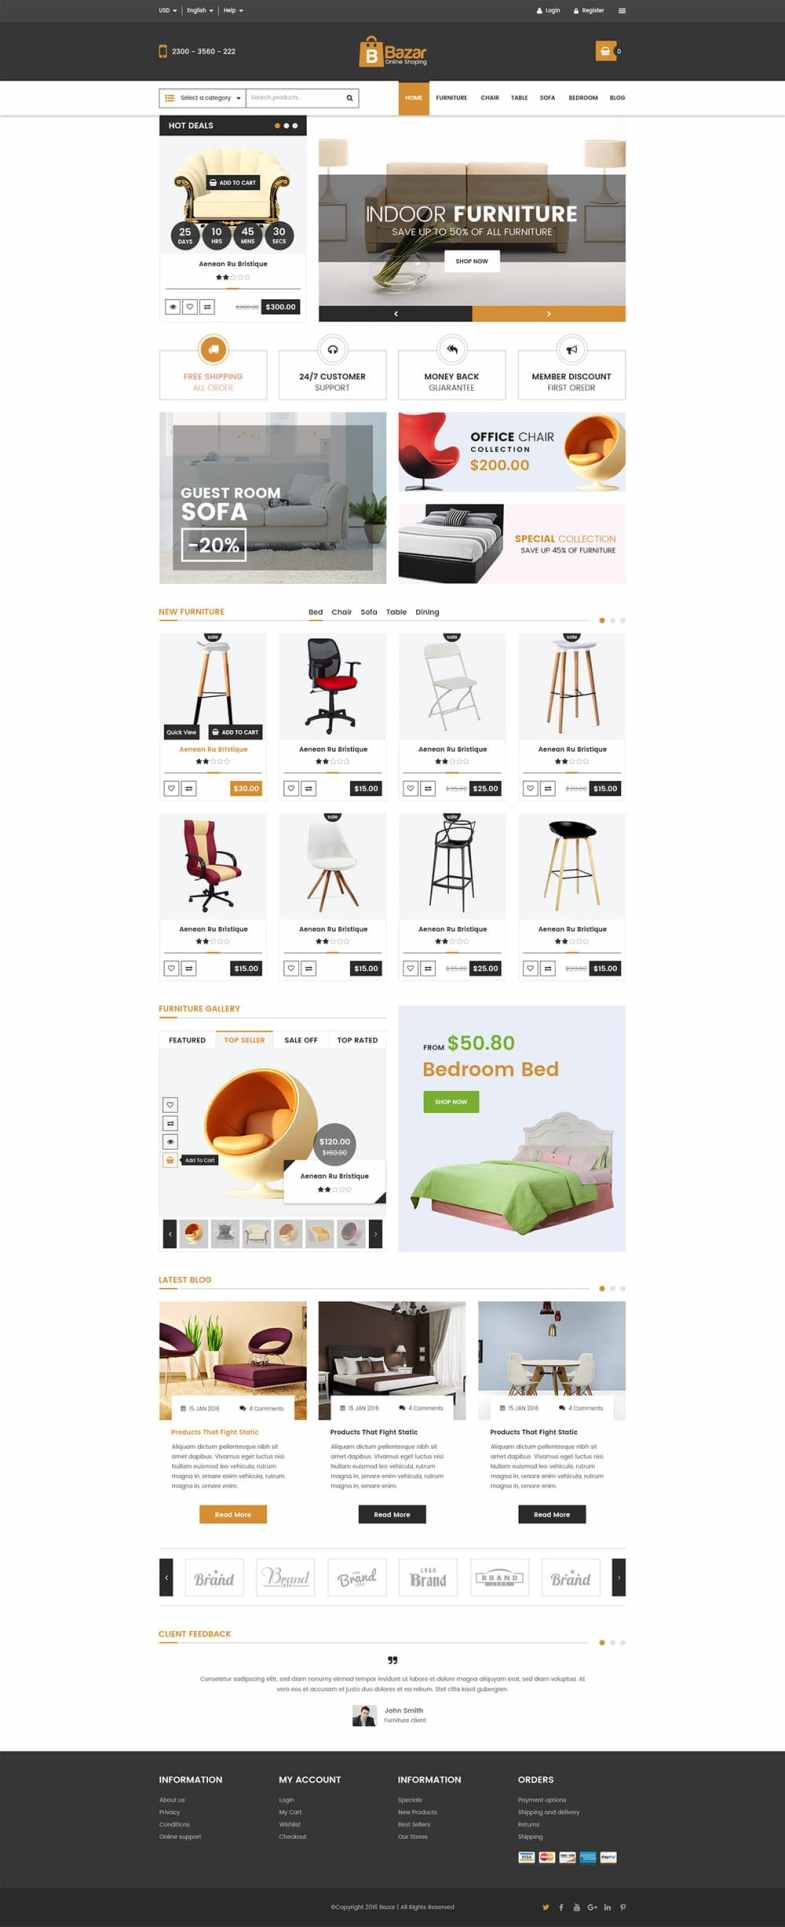 Bazar E Commerce Web Template PSD